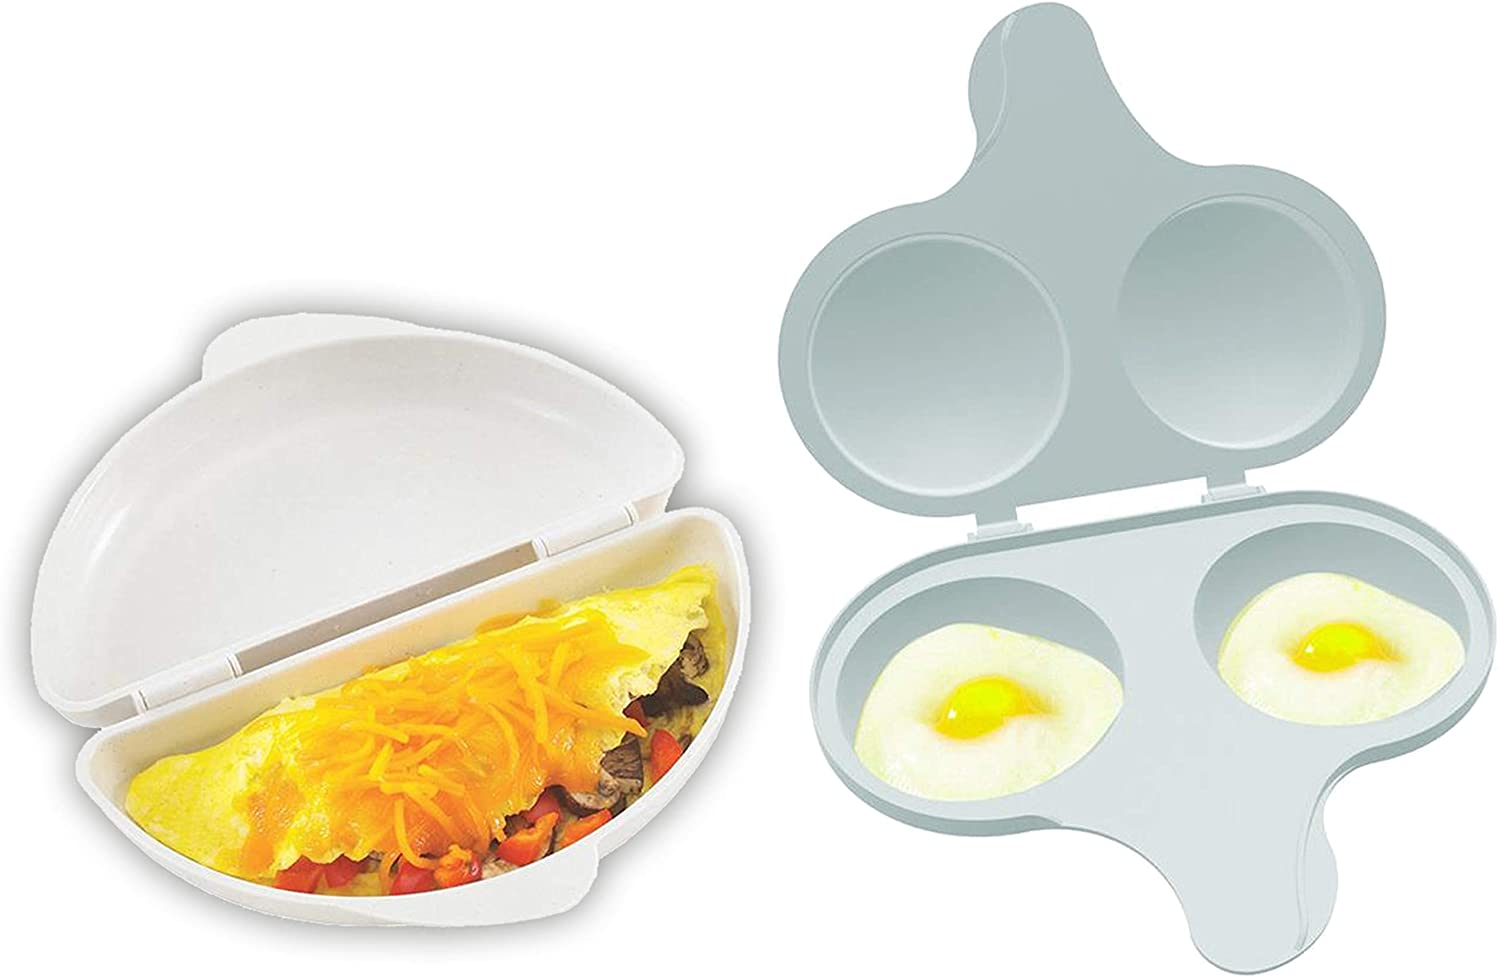 Nordic Ware Easy Breakfast Set - Omelet Pan and 2 Cavity Egg Poacher (Microwaveable)